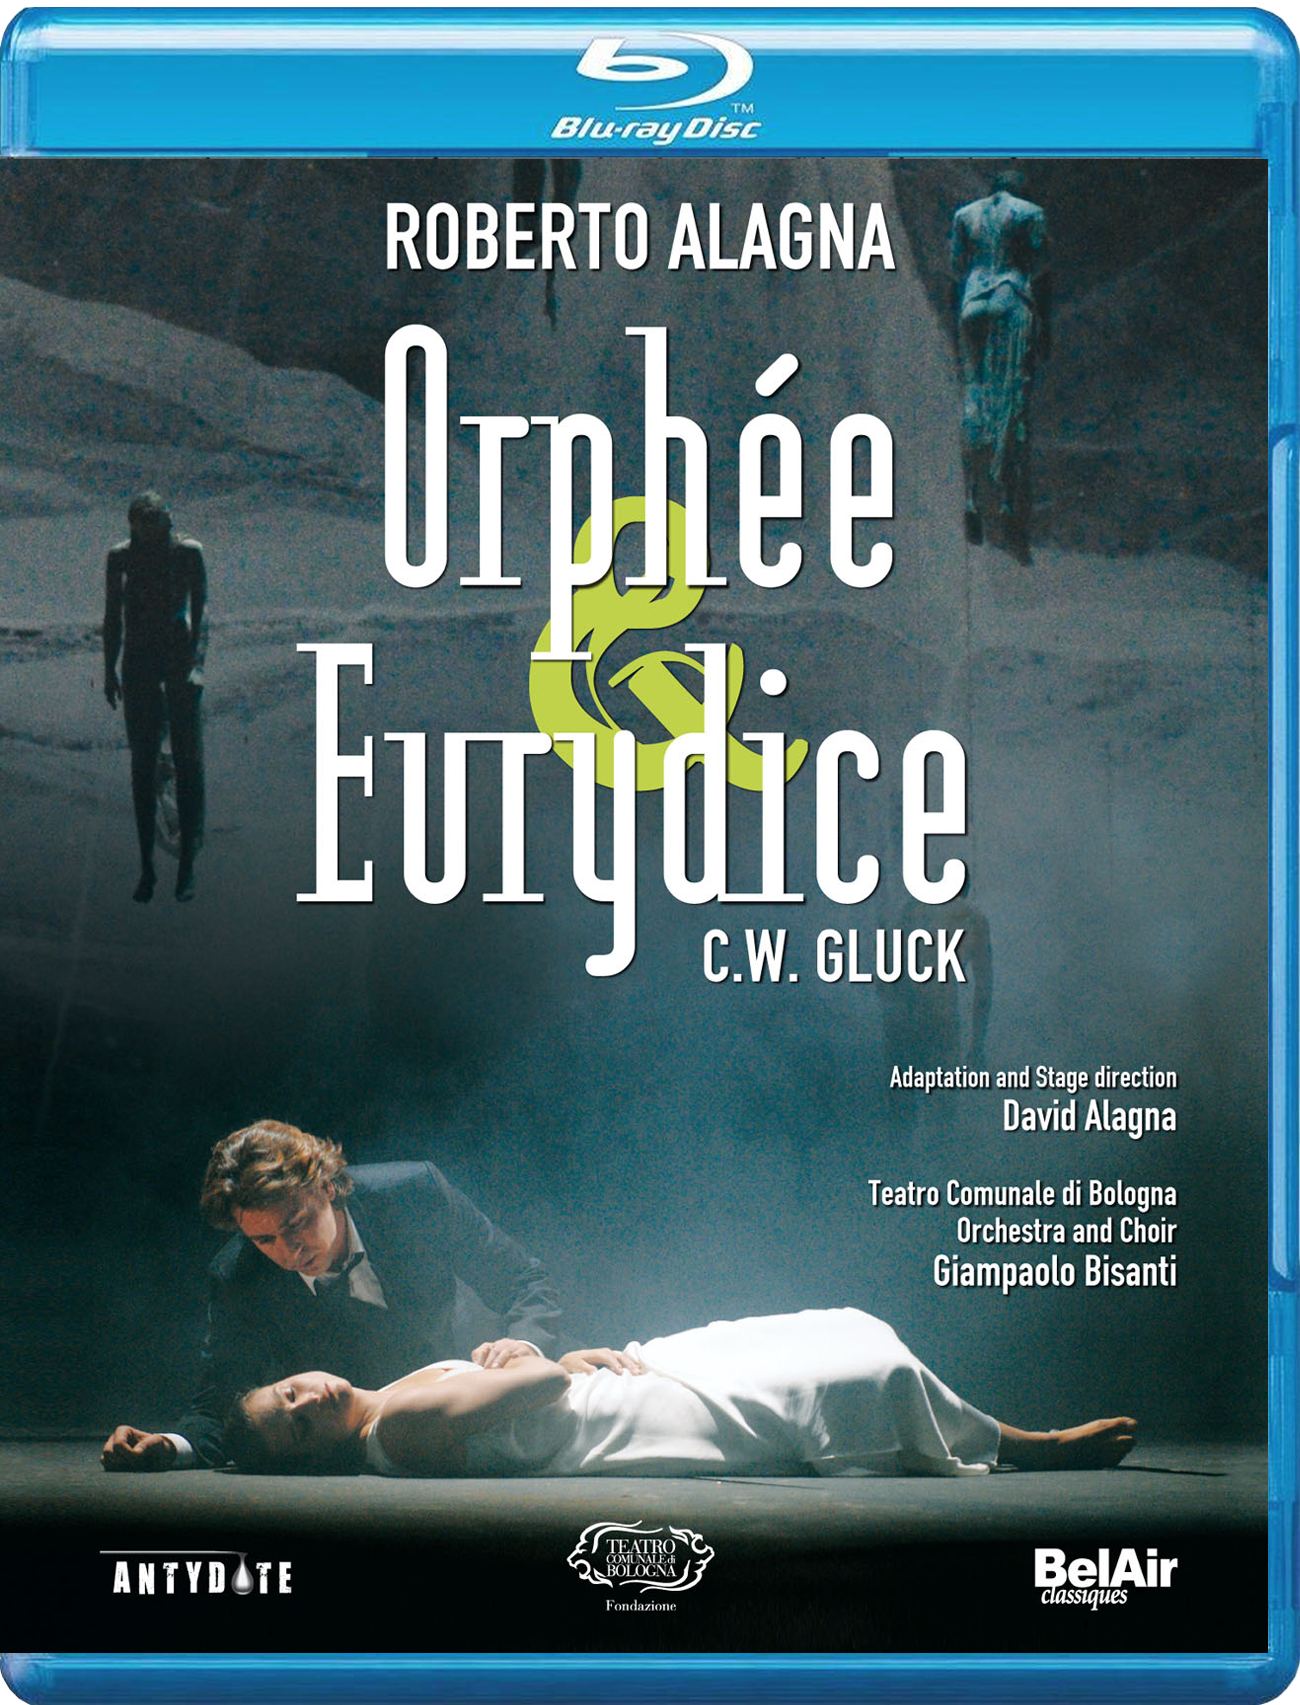 bac452-bd-cover-orphee-alagna.png